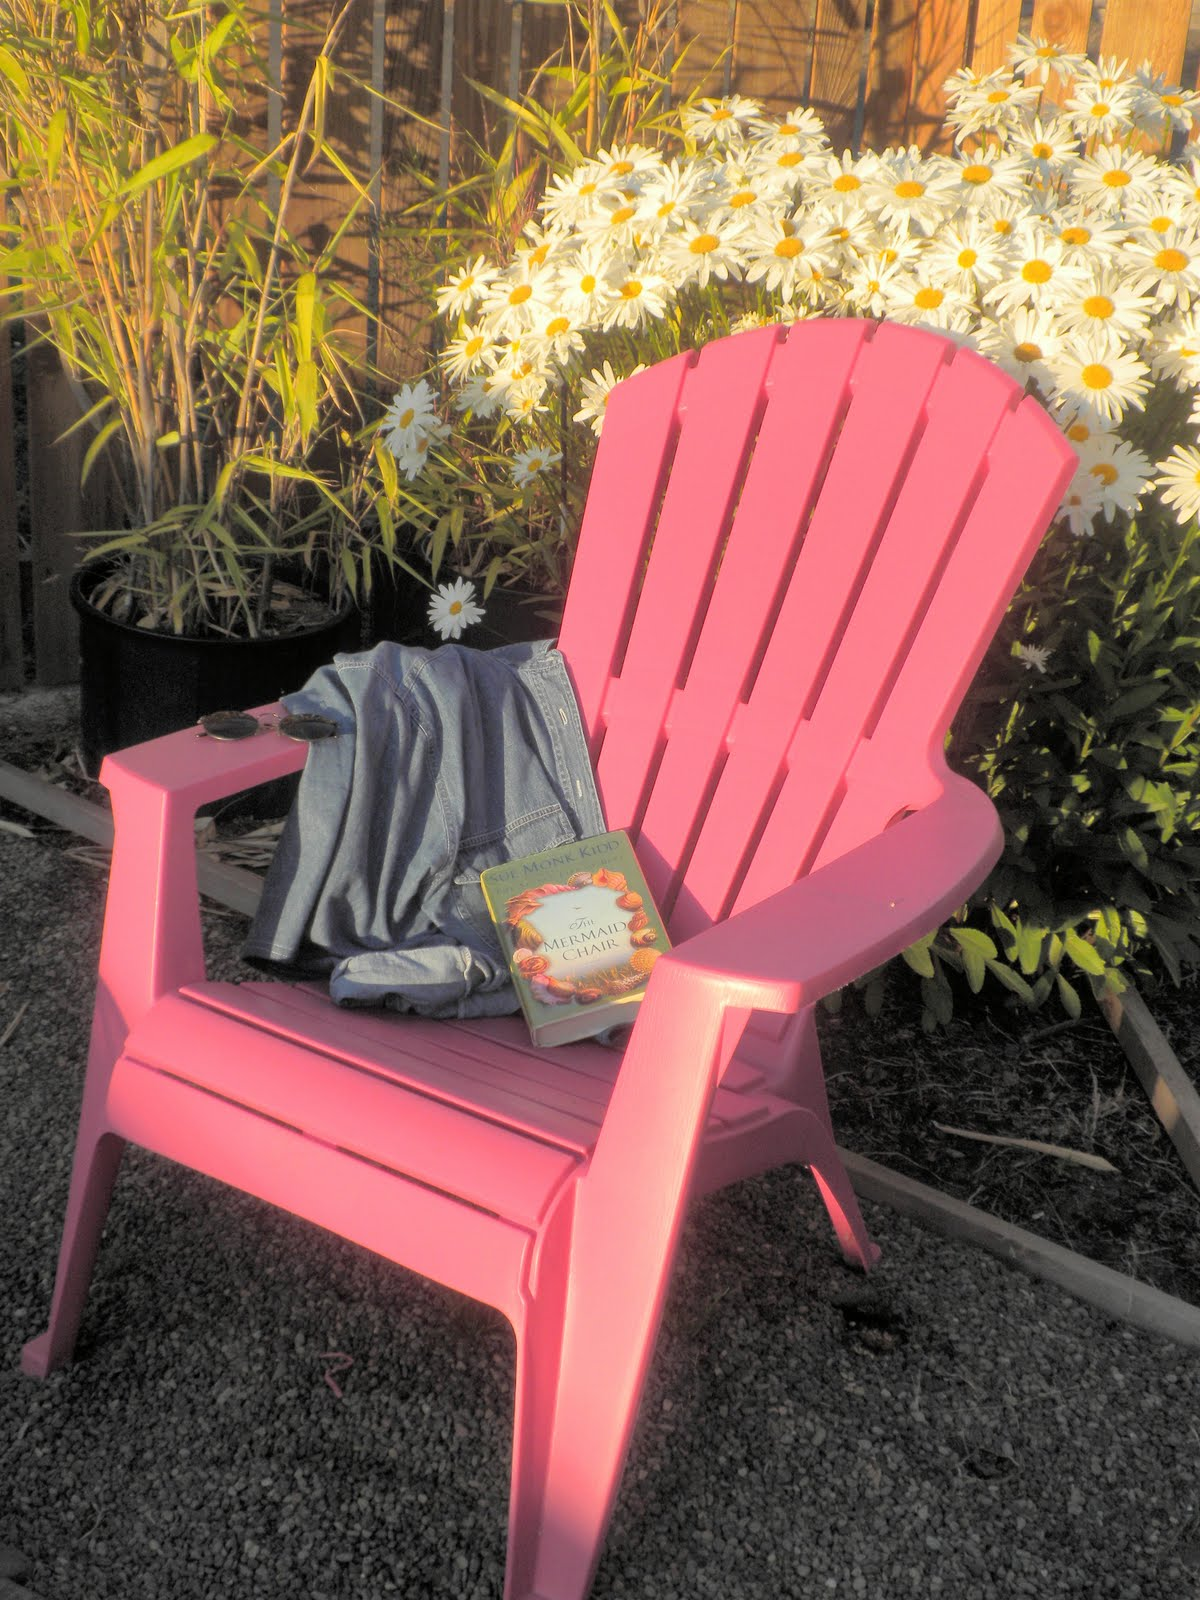 The Mermaid Chair Booster Chairs For Kids Saltair Station